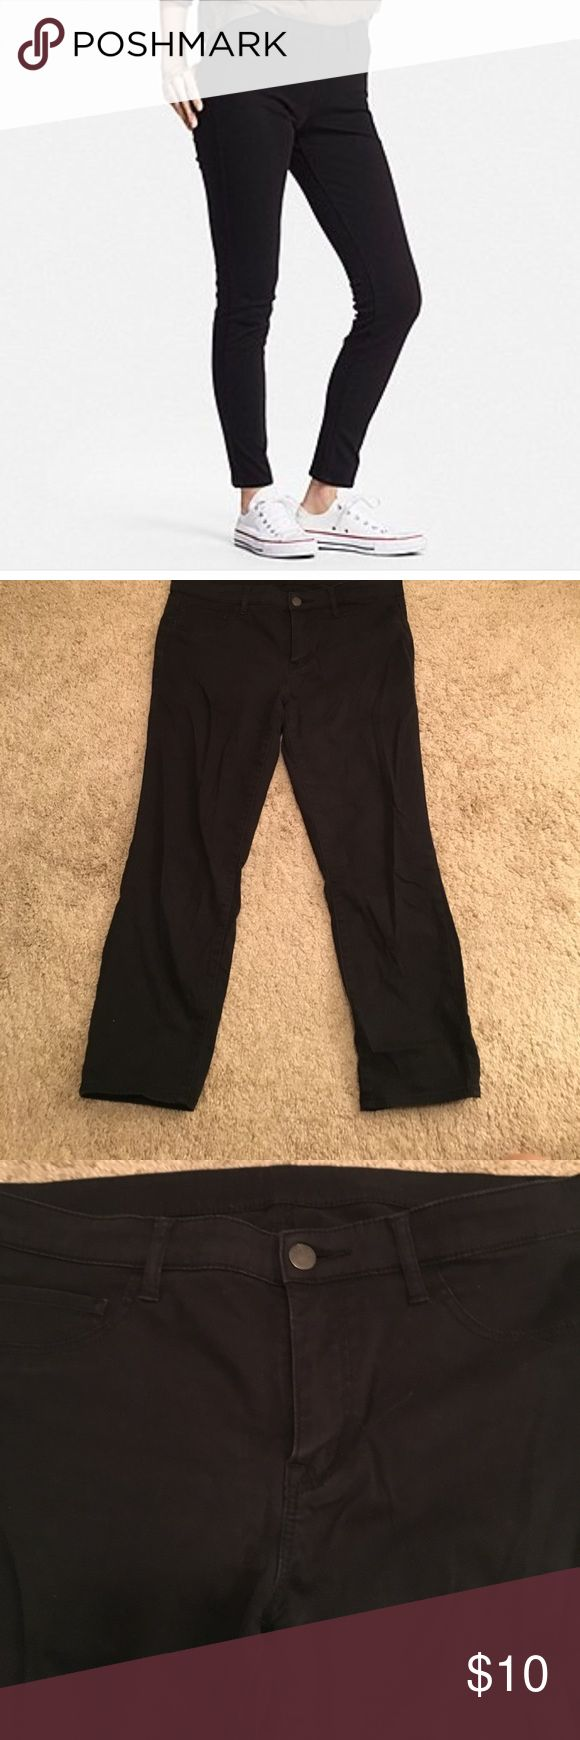 Uniqlo cotton stretch ankle pants. Black. Great condition black ankle pants from Uniqlo. Size 29. Inseam in 23 inches measured from crotch of pants. Very soft. They don't make them anymore. 74%cotton, 33% rayon and 3% spandex Uniqlo Pants Ankle & Cropped